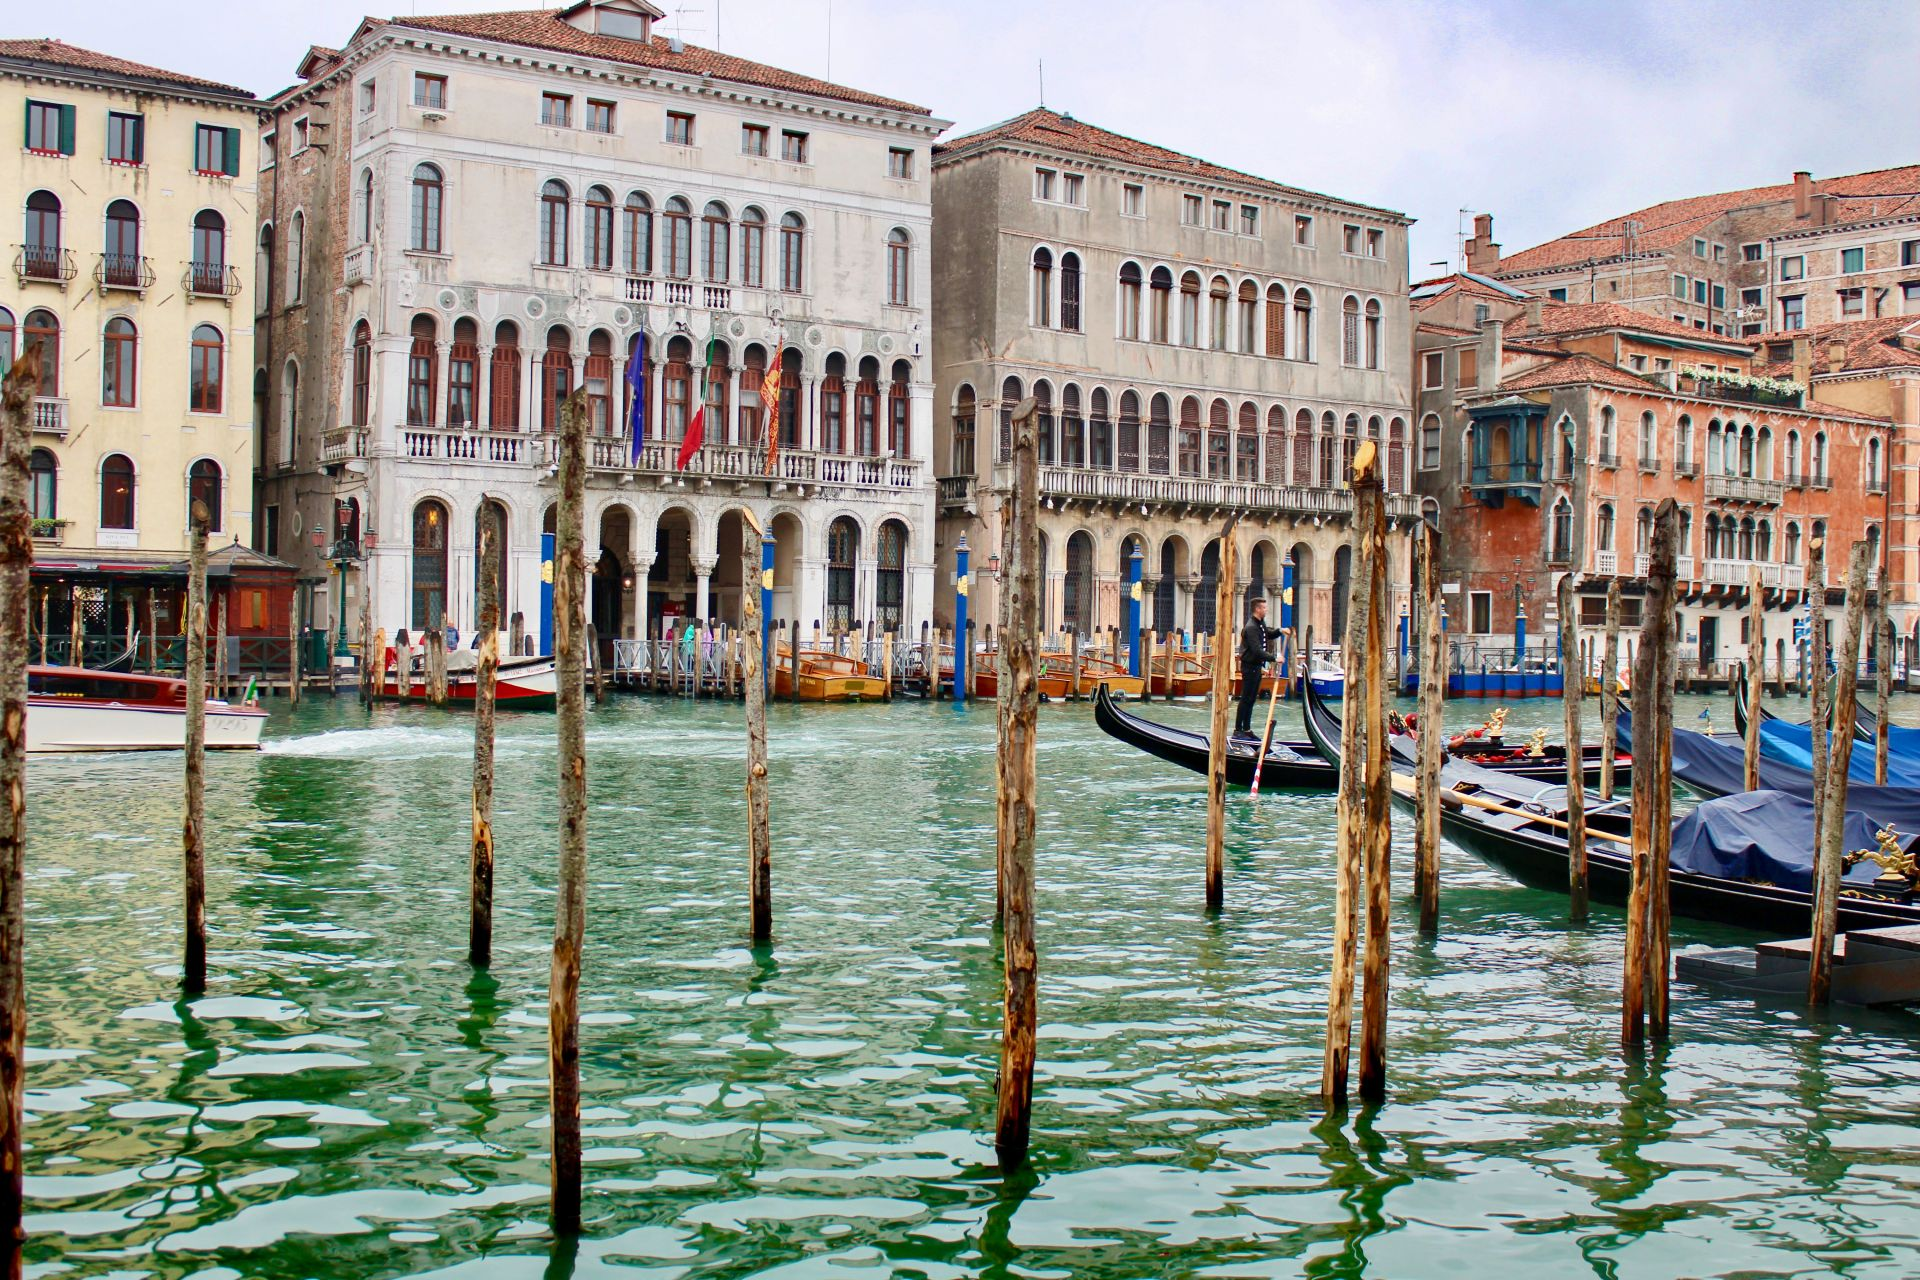 Falling in Love With Venice: Travel Tips for Visiting Venice